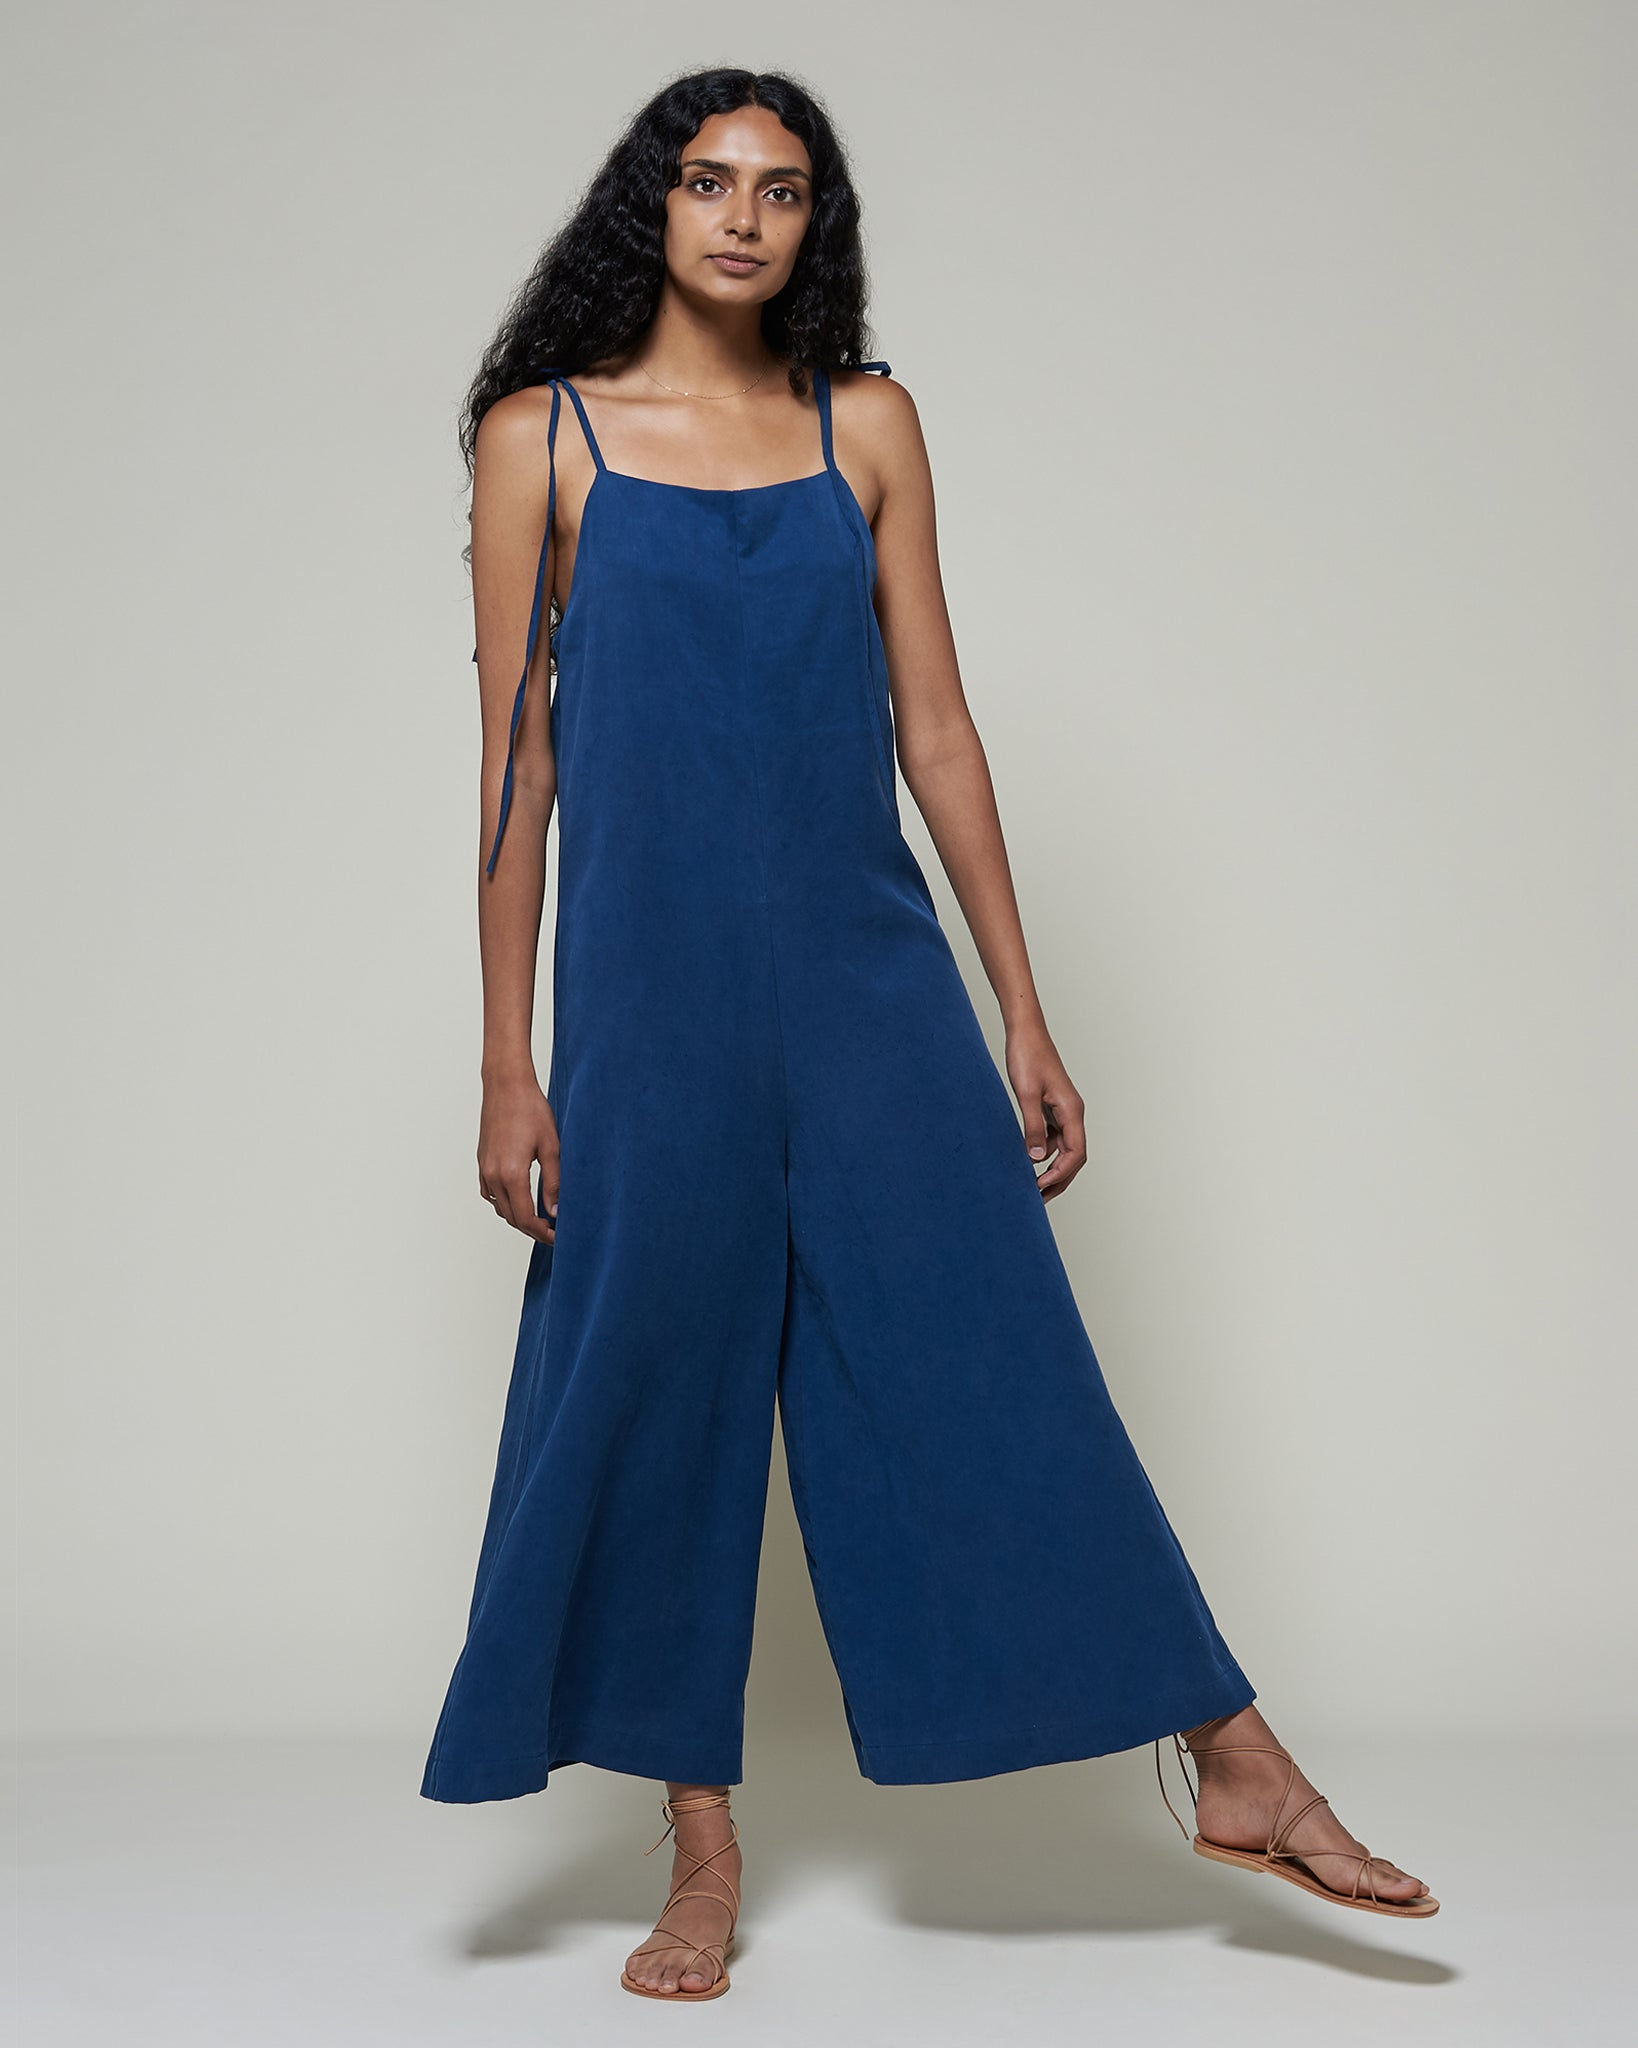 The Ren Jumpsuit